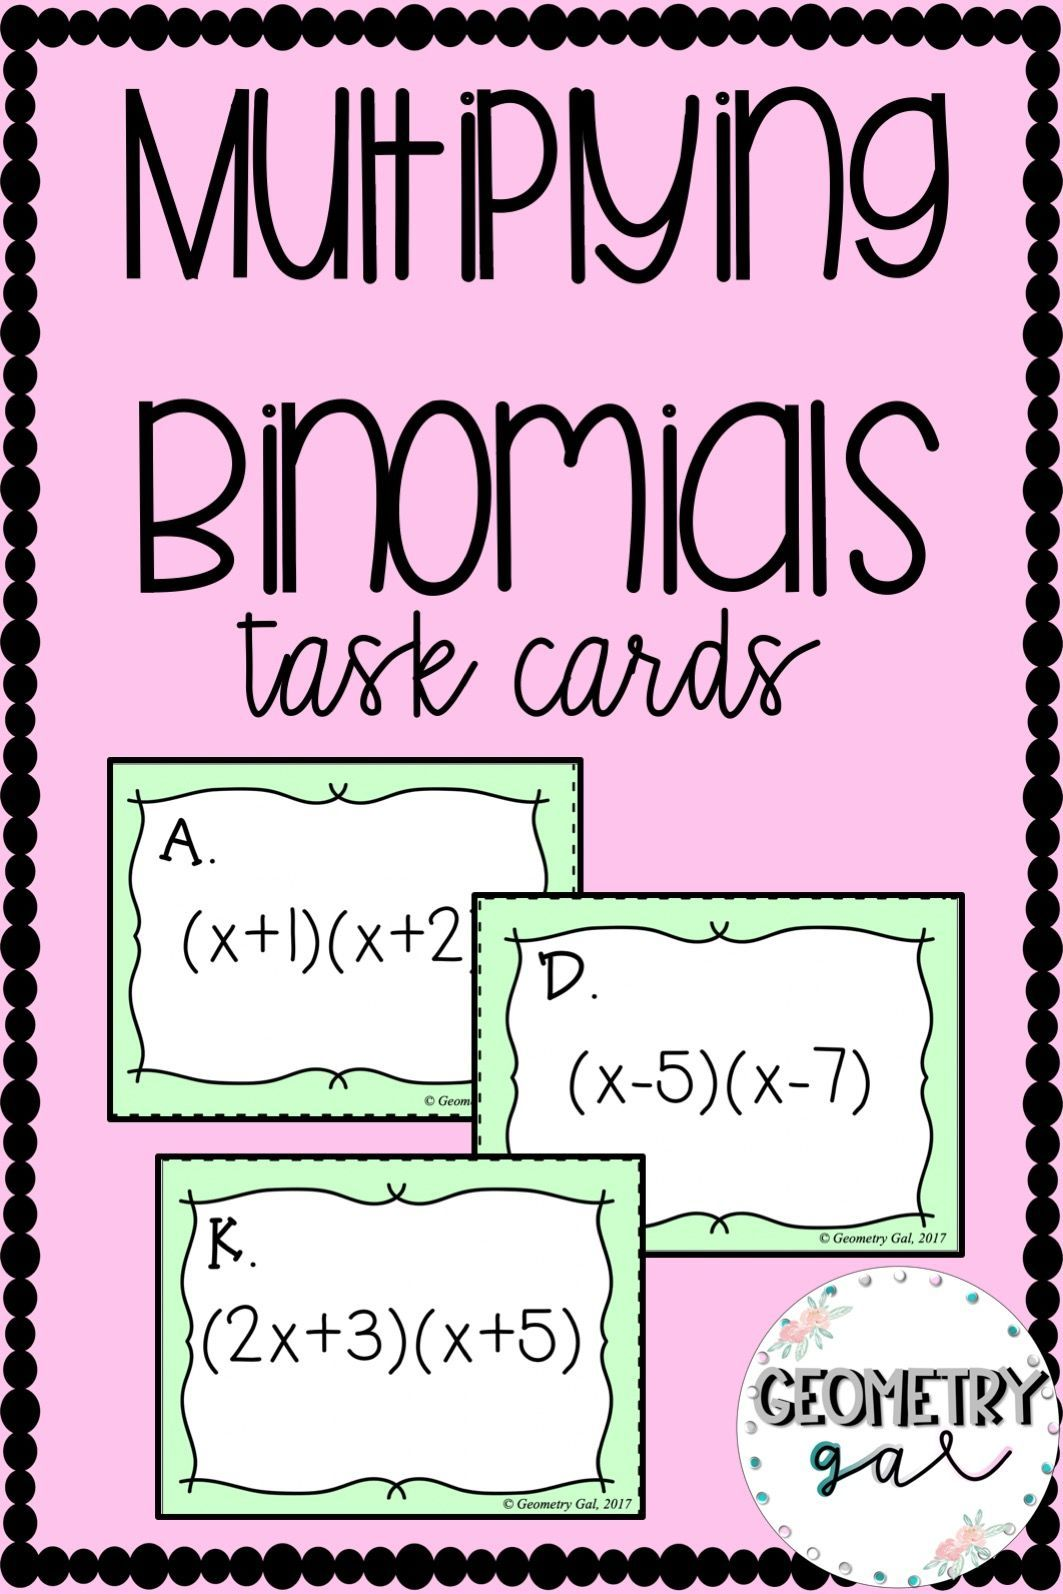 Multiplying Binomials Task Cards